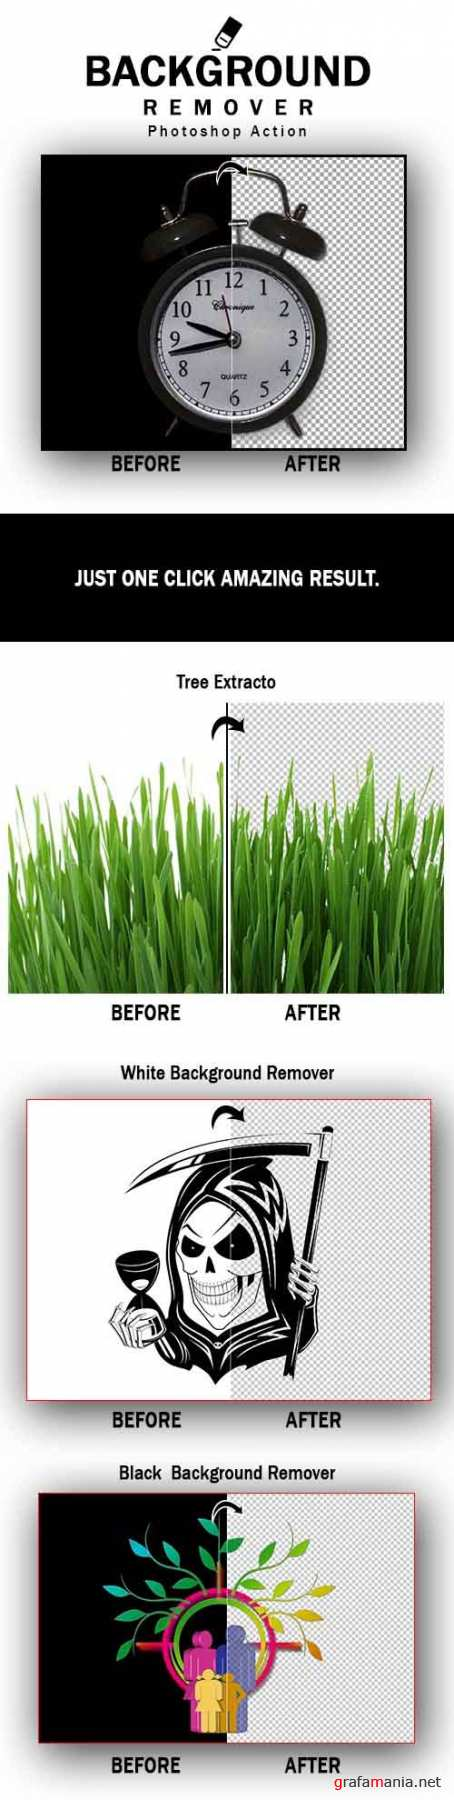 Background Remover Photoshop Action 26108315